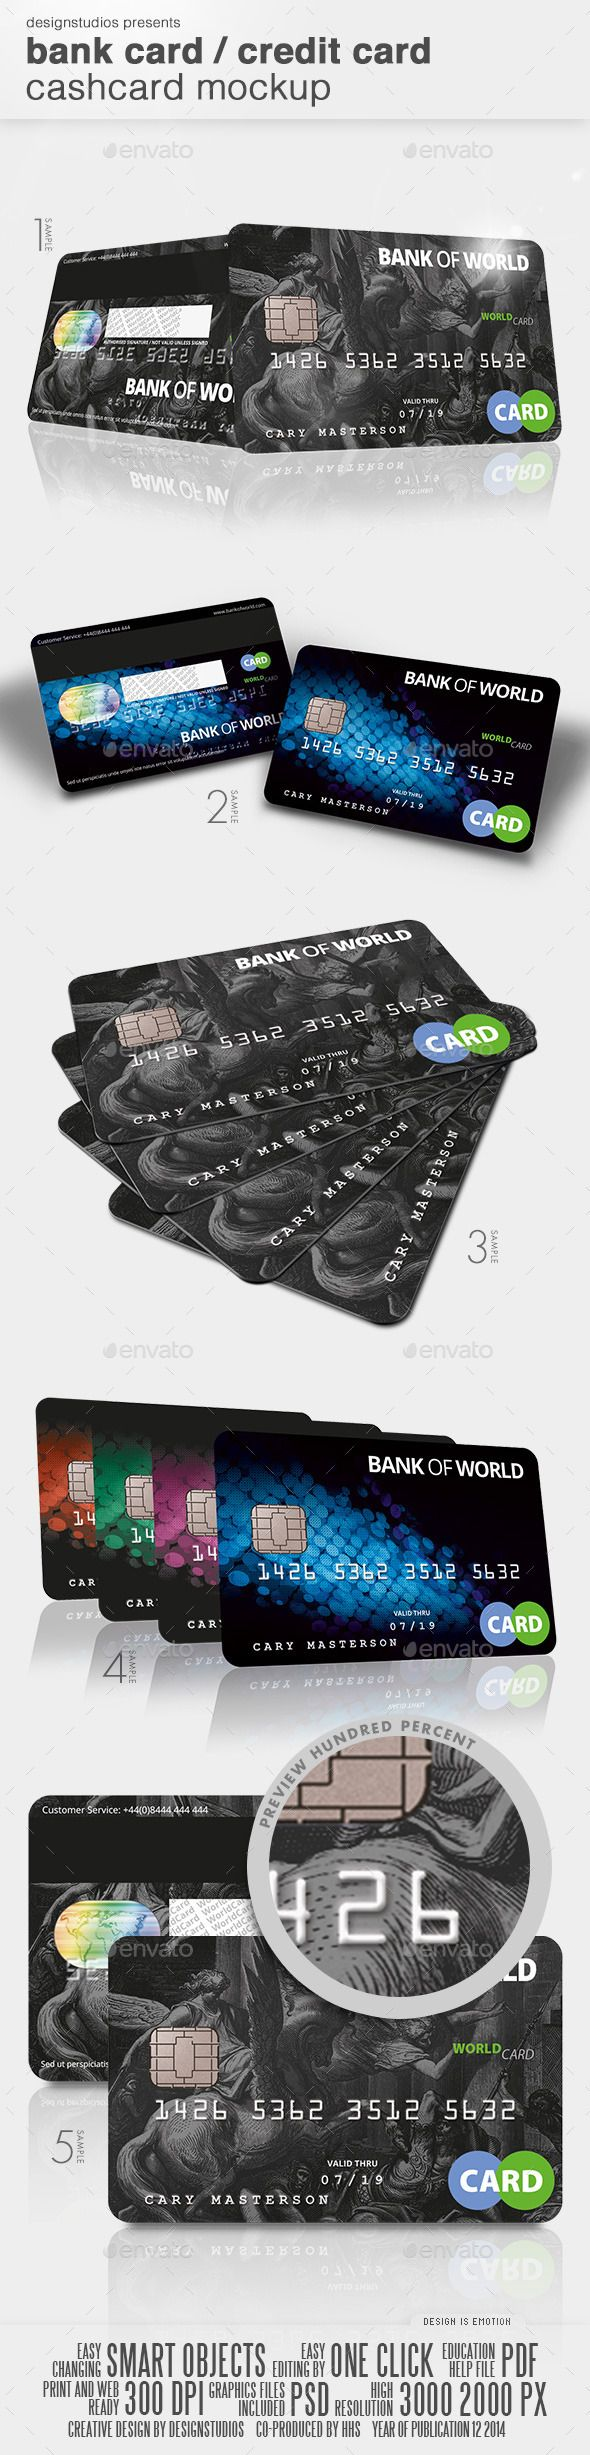 Bank Card / Credit Card CashCard Mock-Up | Buy and Download: http://graphicriver.net/item/bank-card-credit-card-cashcard-mockup/9846708?ref=ksioks